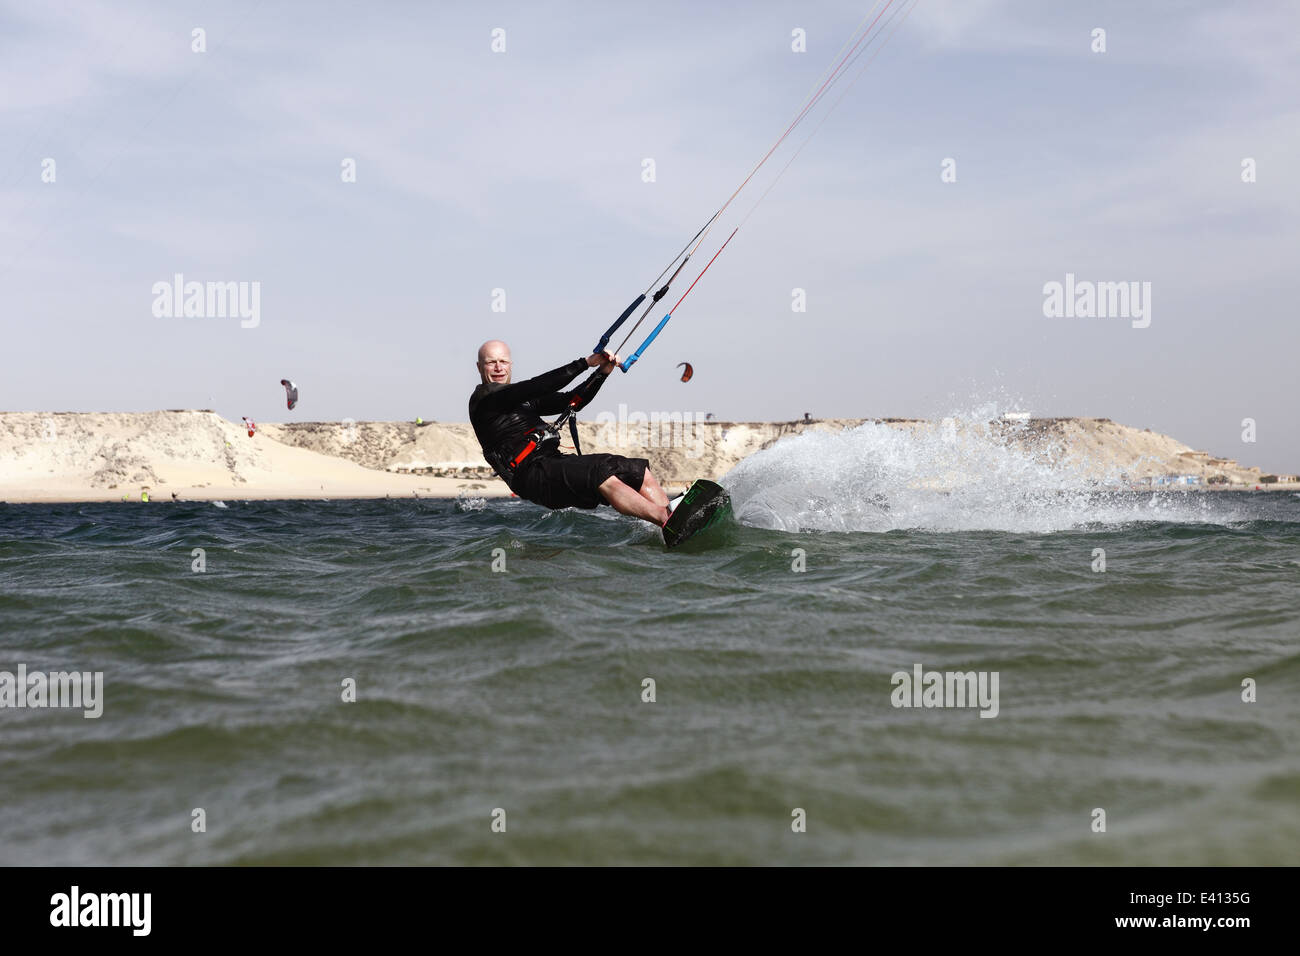 Man kitesurfing towards the photographer on the lagoon in Dakhla, Western Sahara, Morocco - Stock Image